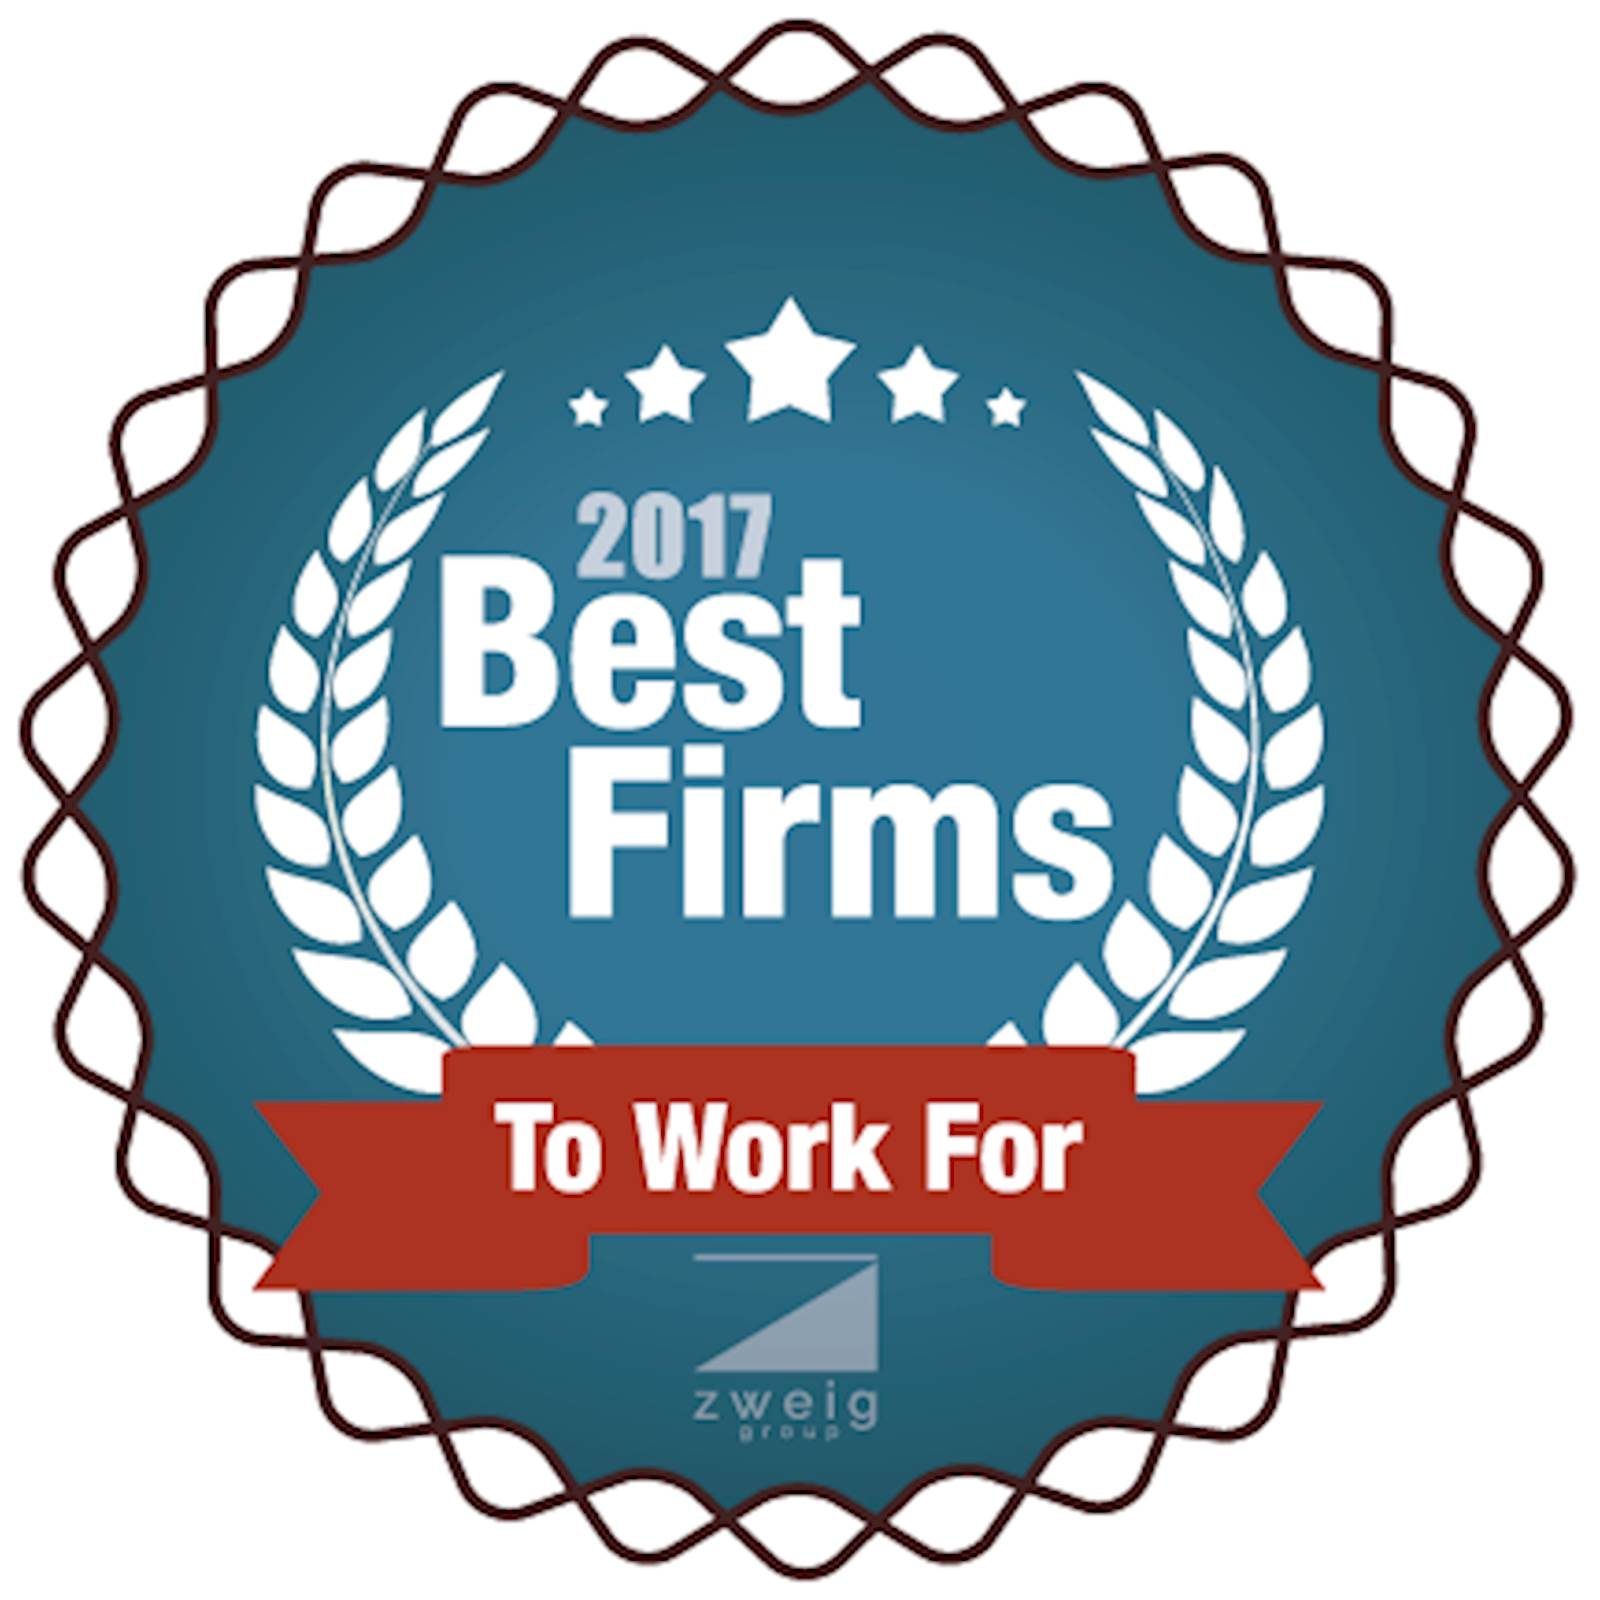 Best Firms To Work For Award - Hanson - logo